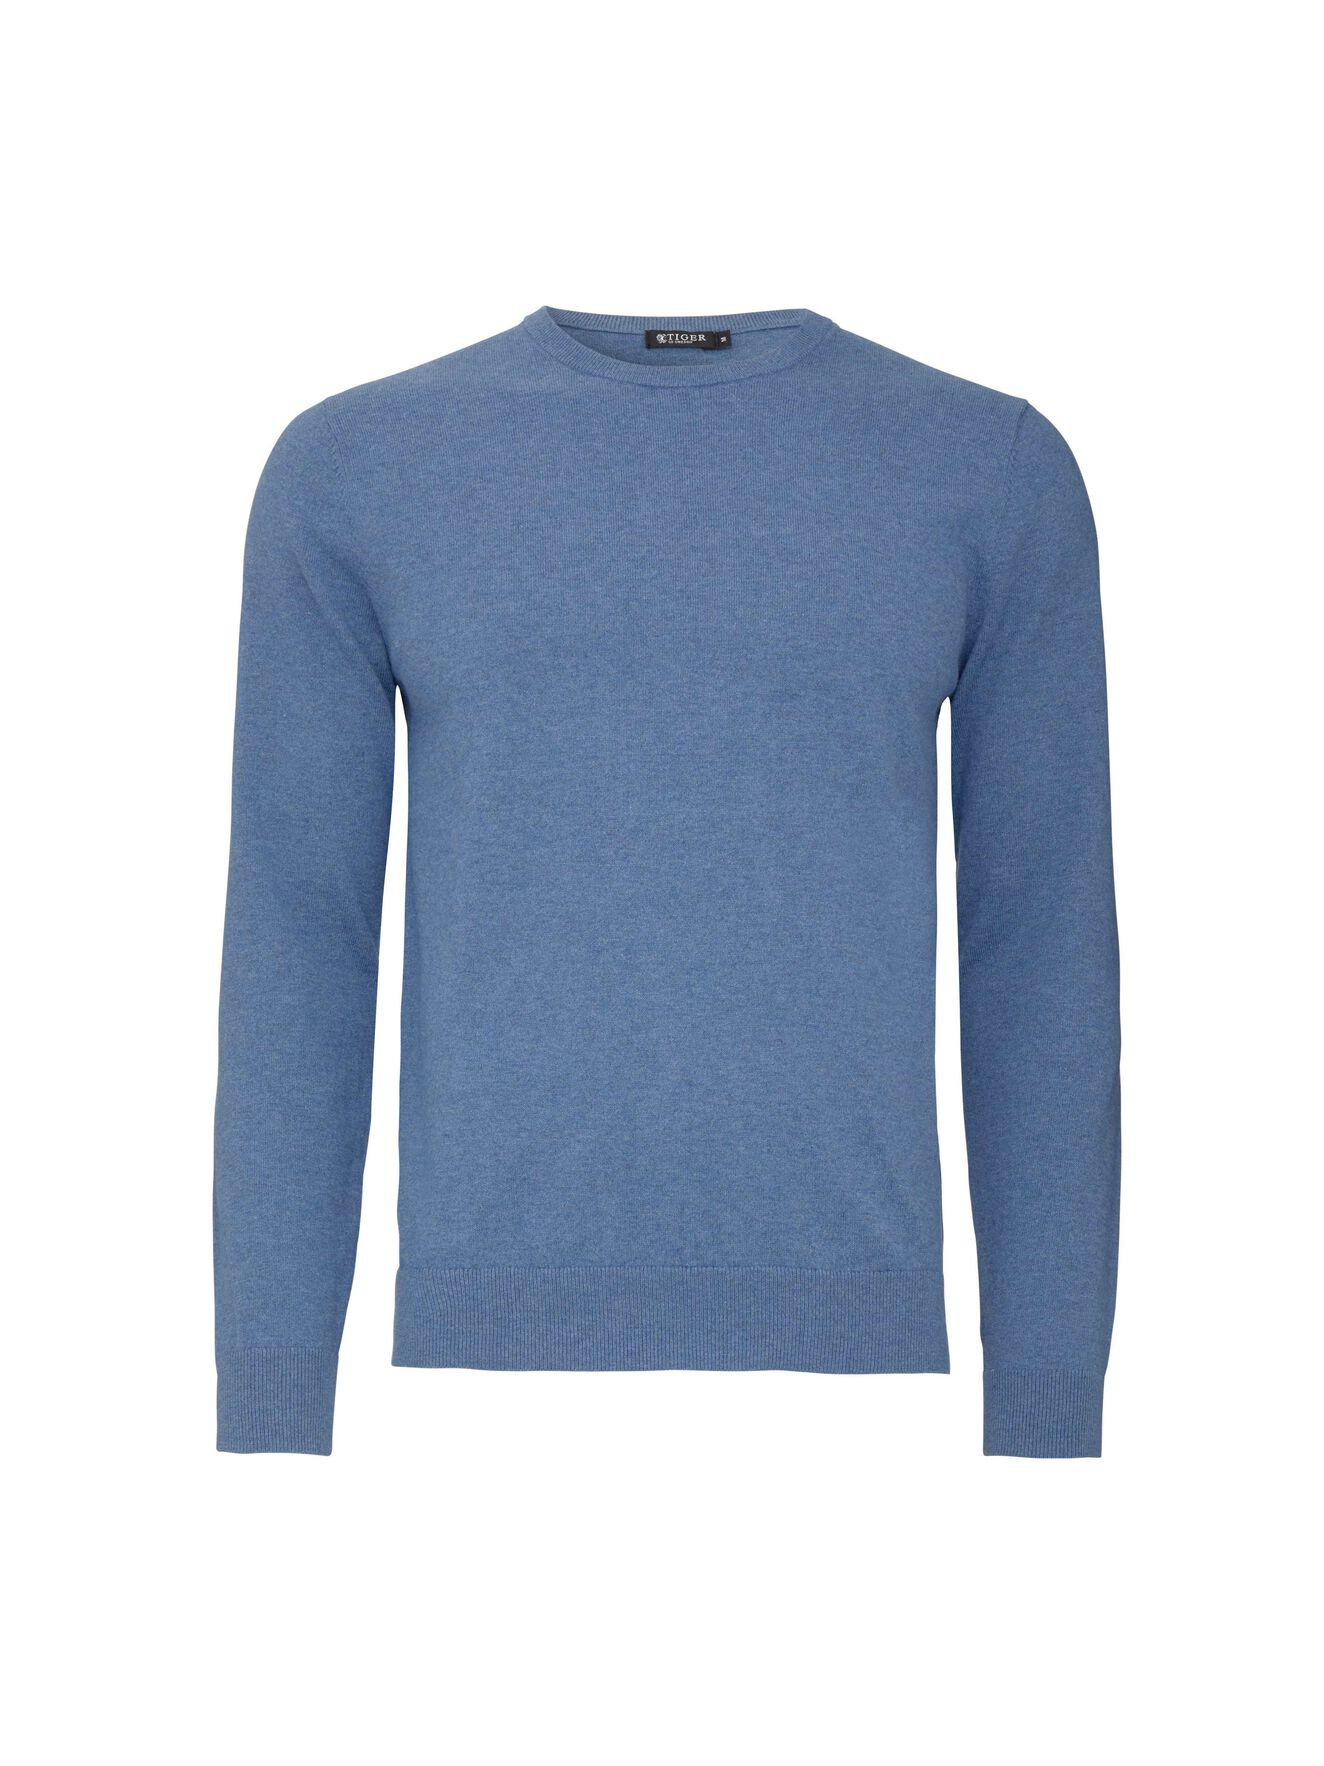 Matias CS pullover in Wave from Tiger of Sweden